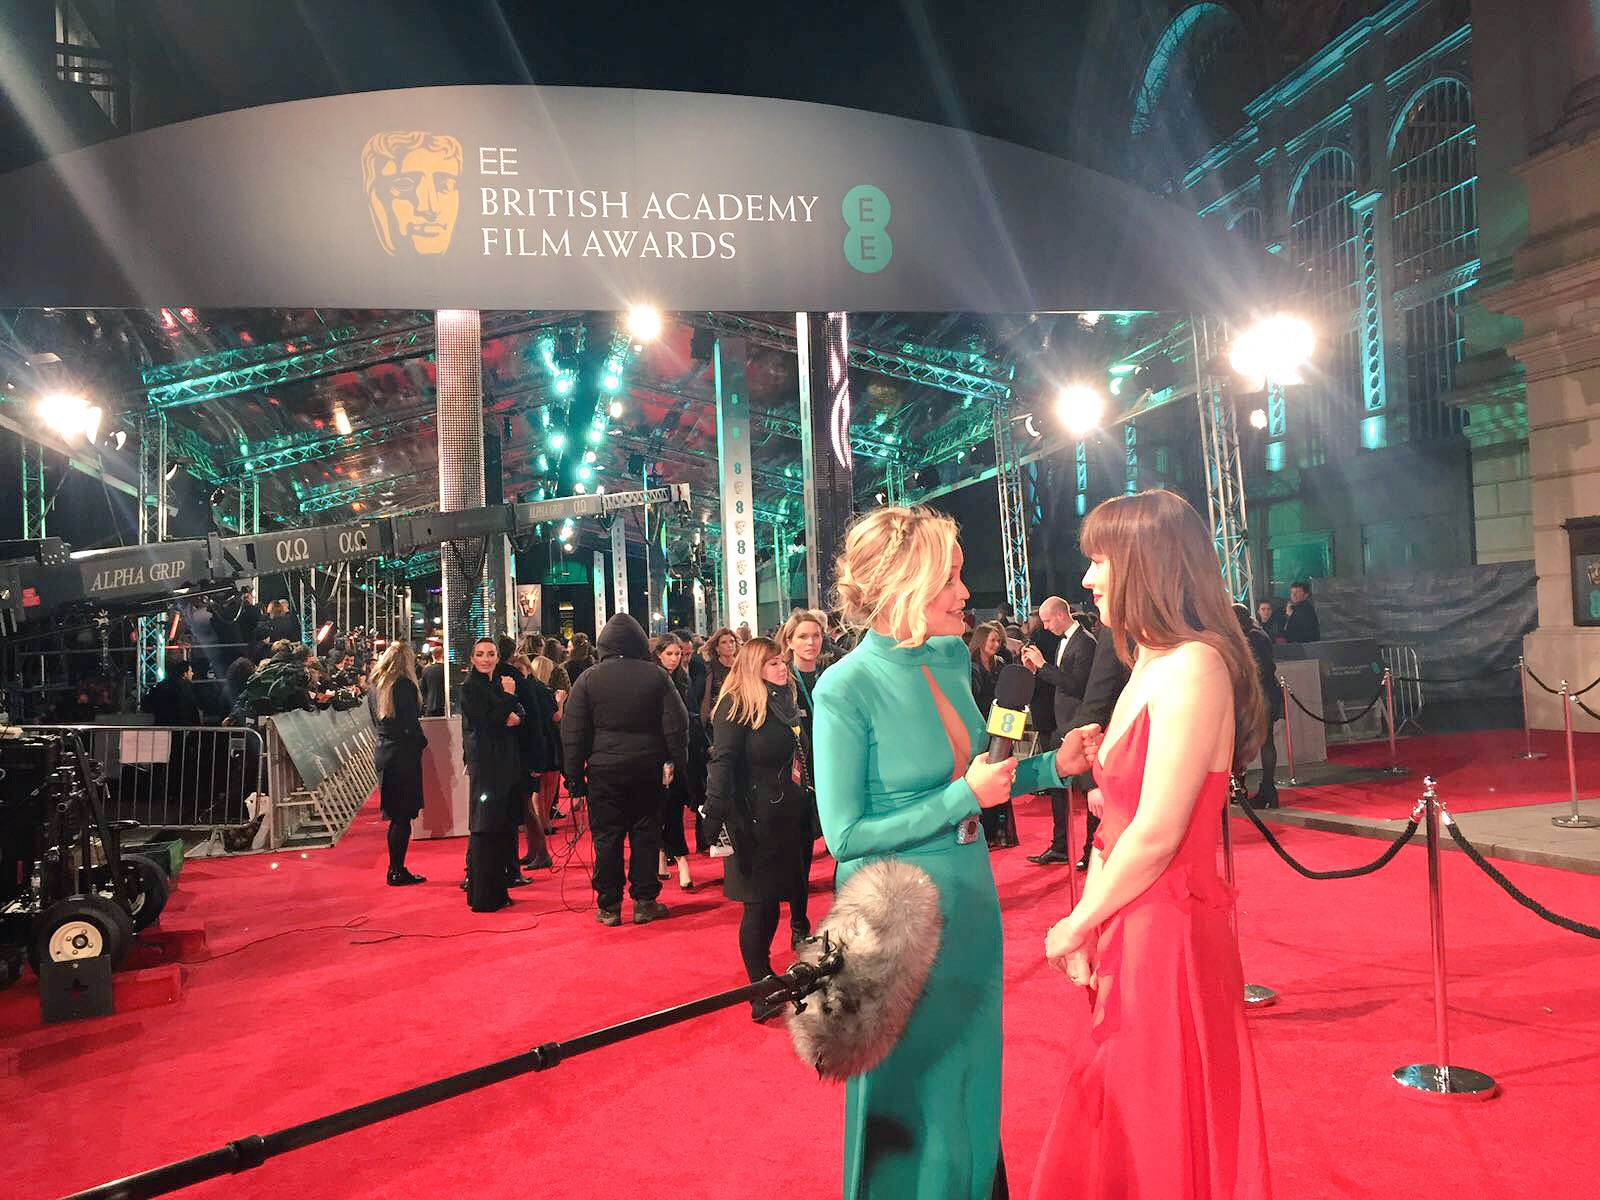 #EERisingStar nominee @DakotaJohnsons looking stunning in red as she chats to @EE presenter @thewhitmore #EEBAFTAs https://t.co/jwjX72MAG2